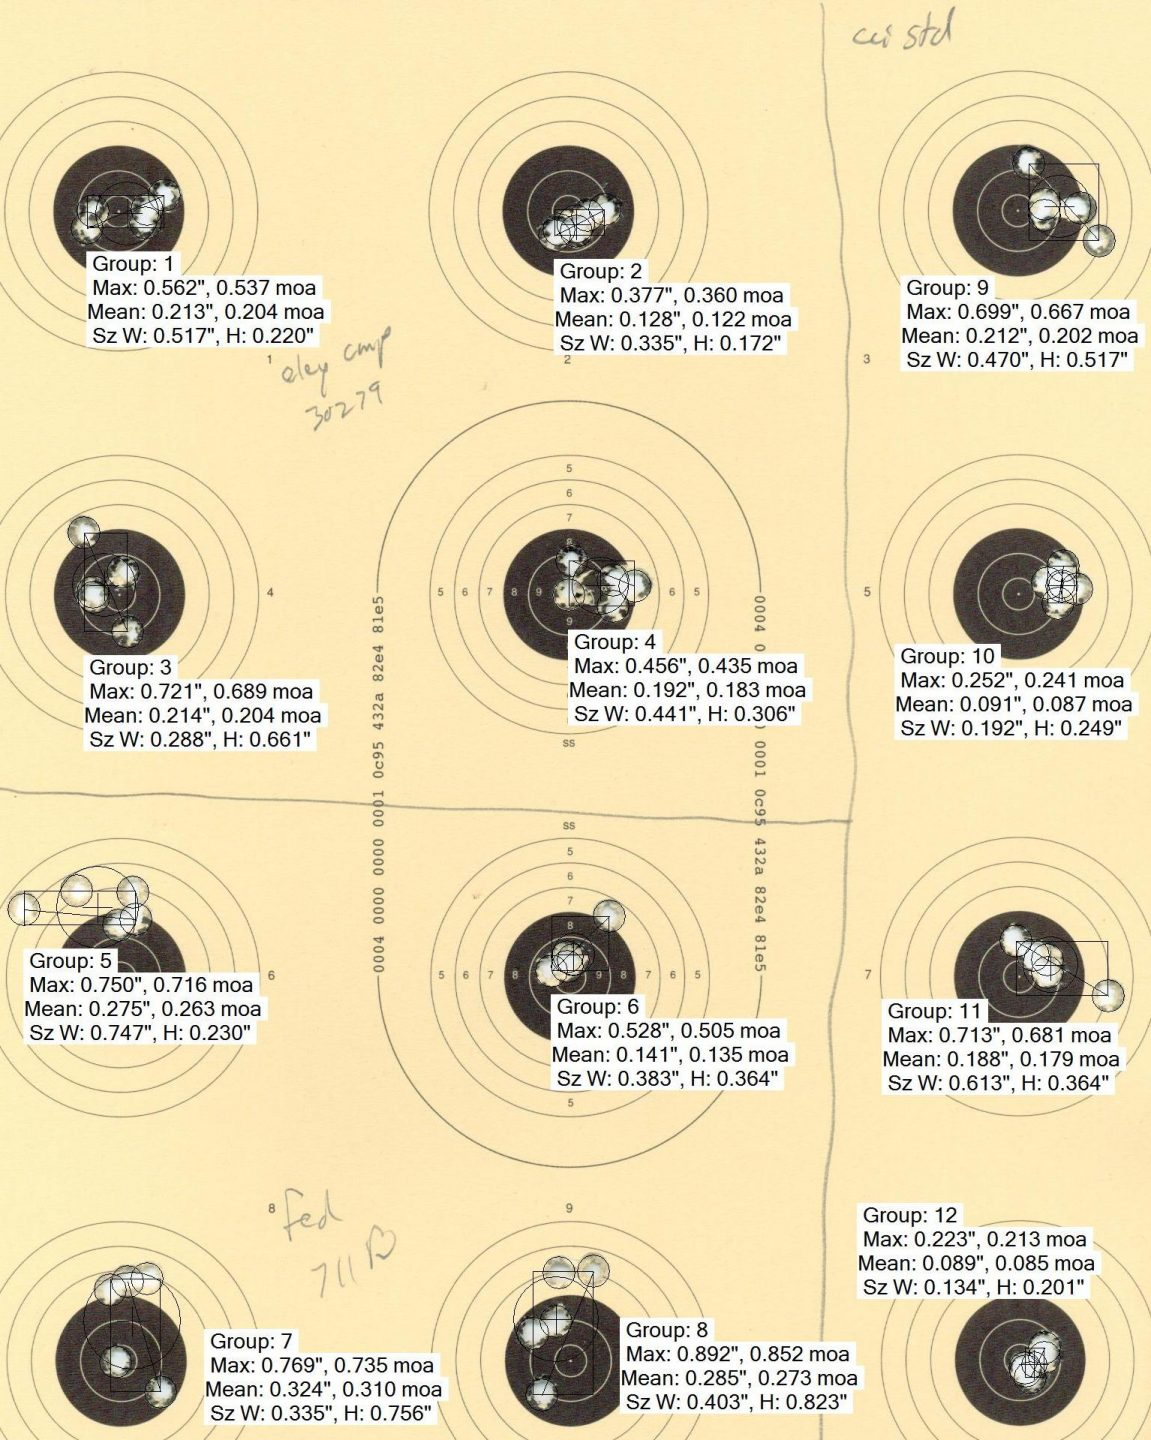 A few 5rd groups at 50yds testing the Proof Vudoo V-22 with some lower cost practice ammo